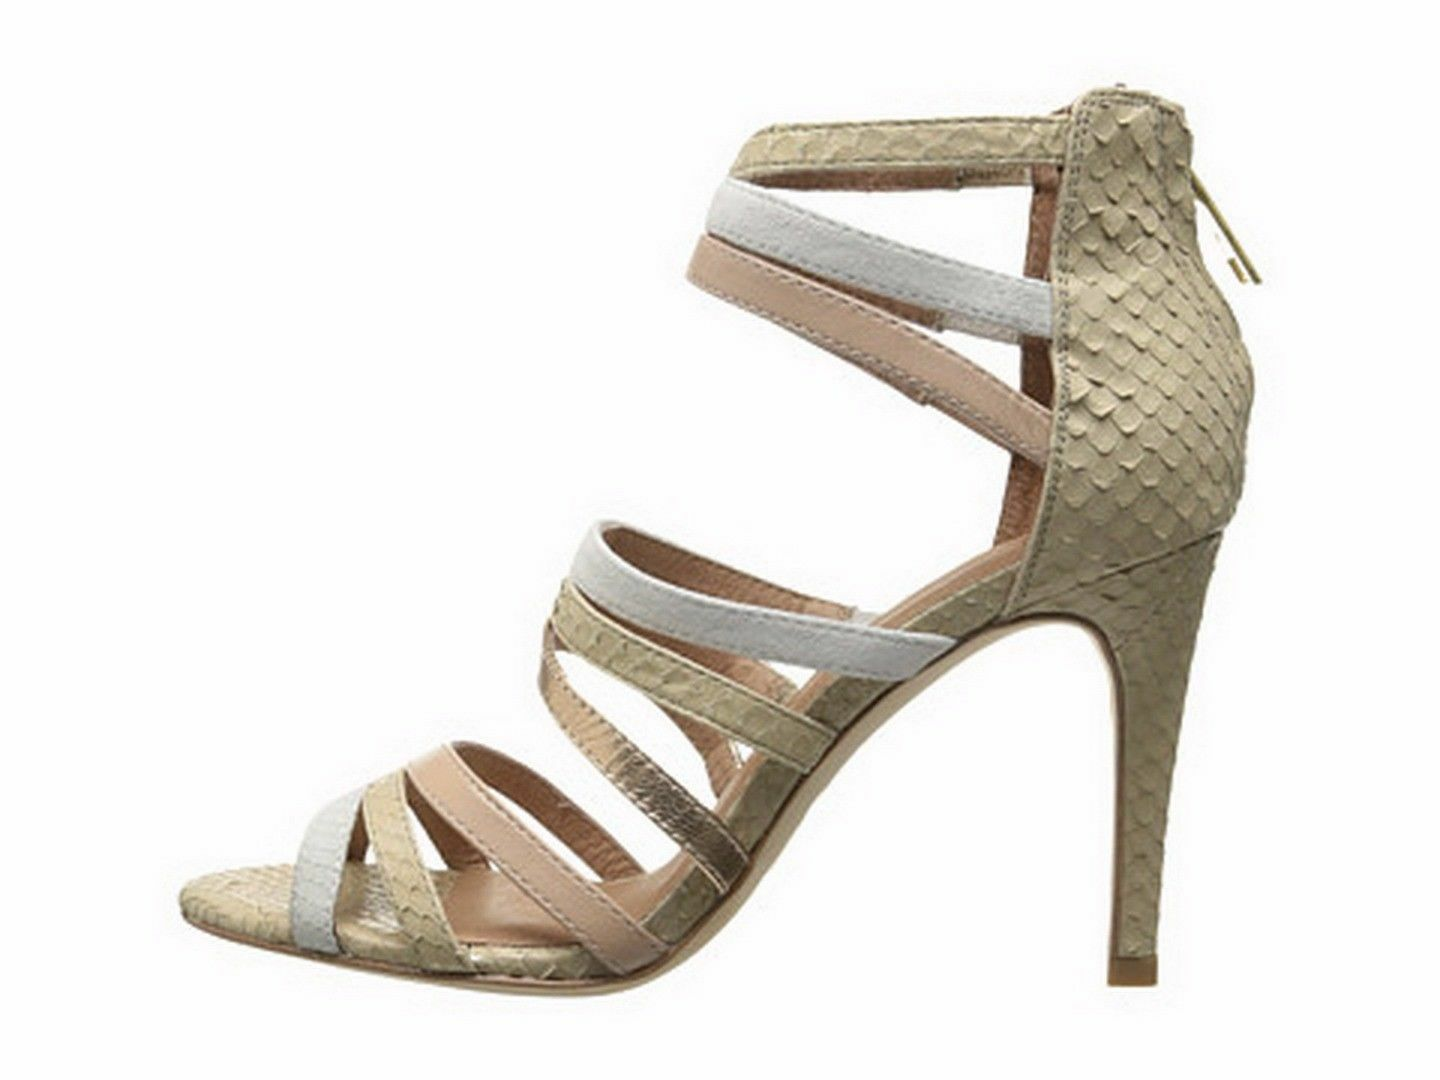 New New New JOIE ZEE Strappy Heeled Sandal 39.5 Nude Multi Embossed Leather  405 NIB 08f8d9